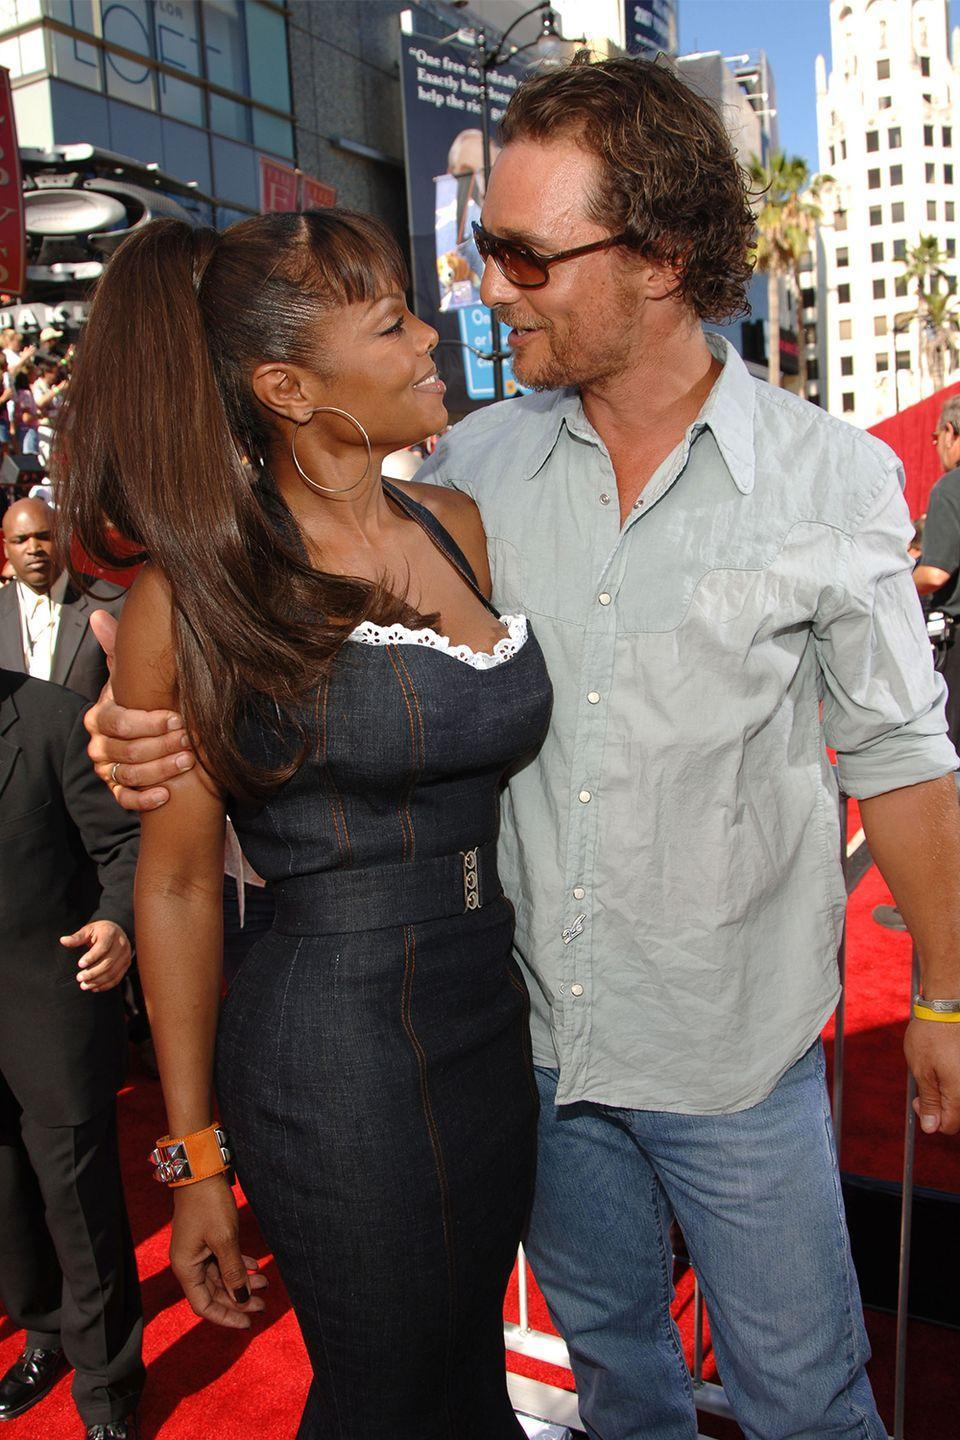 """<p>After meeting at the 2002 Grammy Awards, Janet Jackson and Matthew McConaughey dated for a short period of time—though McConaughey never considered it a relationship.""""We swapped some good music and she's a dear lady. She's a sweetheart but we're not dating, we're just friends,"""" he <a href=""""https://www.telegraph.co.uk/films/0/unlikely-valentine-hollywoods-bizarre-celebrity-couples/matthew-mcconaughey-janet-jackson/"""" rel=""""nofollow noopener"""" target=""""_blank"""" data-ylk=""""slk:told Upscale Magazine"""" class=""""link rapid-noclick-resp"""">told <em>Upscale Magazine</em></a>. """"That's about all there is right now.""""</p><p>However, Jackson <a href=""""https://www.telegraph.co.uk/films/0/unlikely-valentine-hollywoods-bizarre-celebrity-couples/matthew-mcconaughey-janet-jackson/"""" rel=""""nofollow noopener"""" target=""""_blank"""" data-ylk=""""slk:said in 2006"""" class=""""link rapid-noclick-resp"""">said in 2006</a> that they did date, but very briefly. """"I guess we did [date]. He is such a great guy and a sweetheart. It was just for a minute, that's why I'm so hesitant to mention it,"""" Jackson said.</p>"""